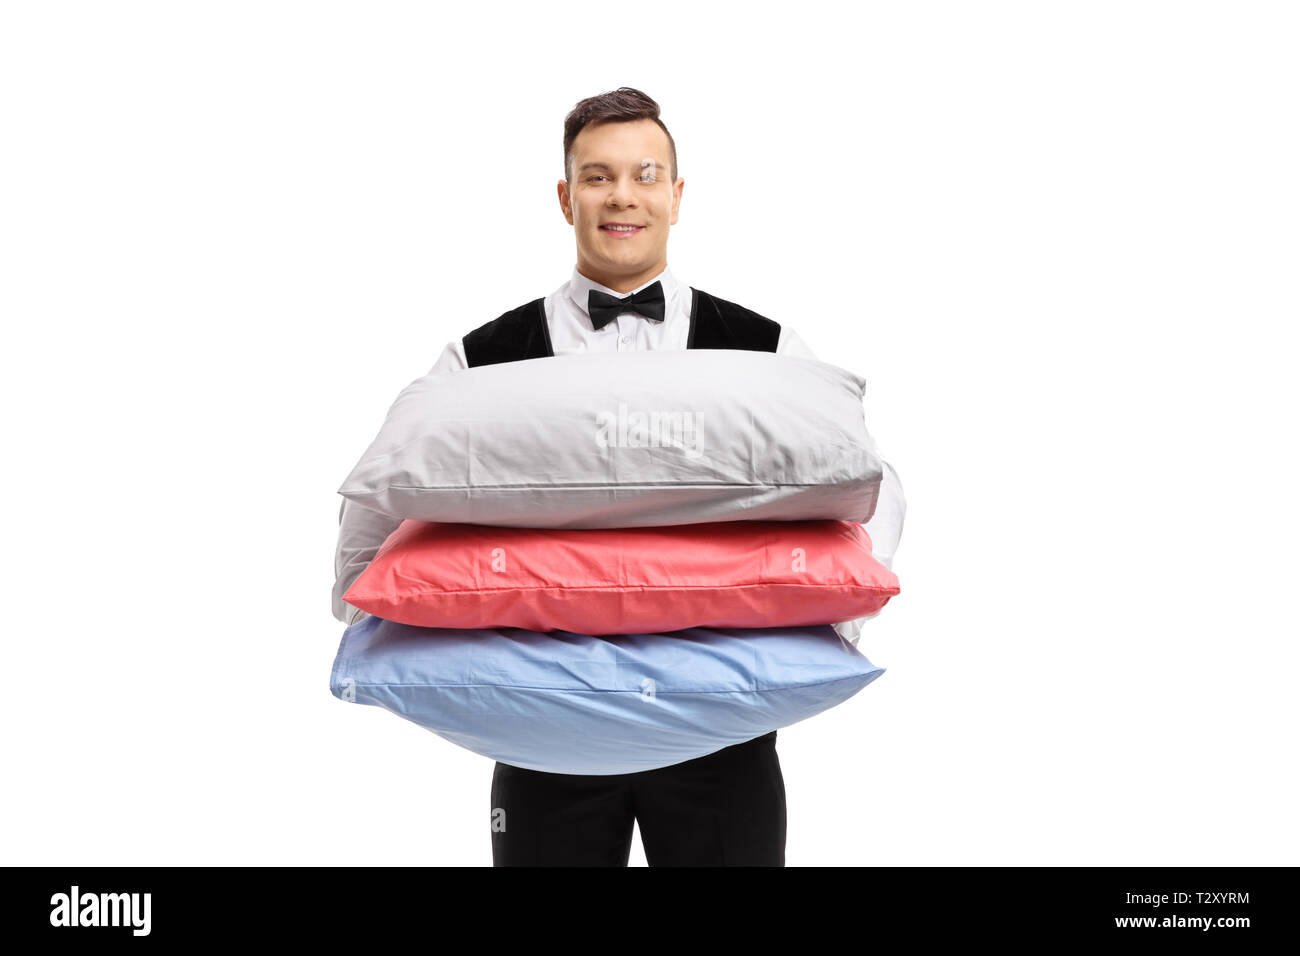 Bellboy with pillows isolated on white background - Stock Image